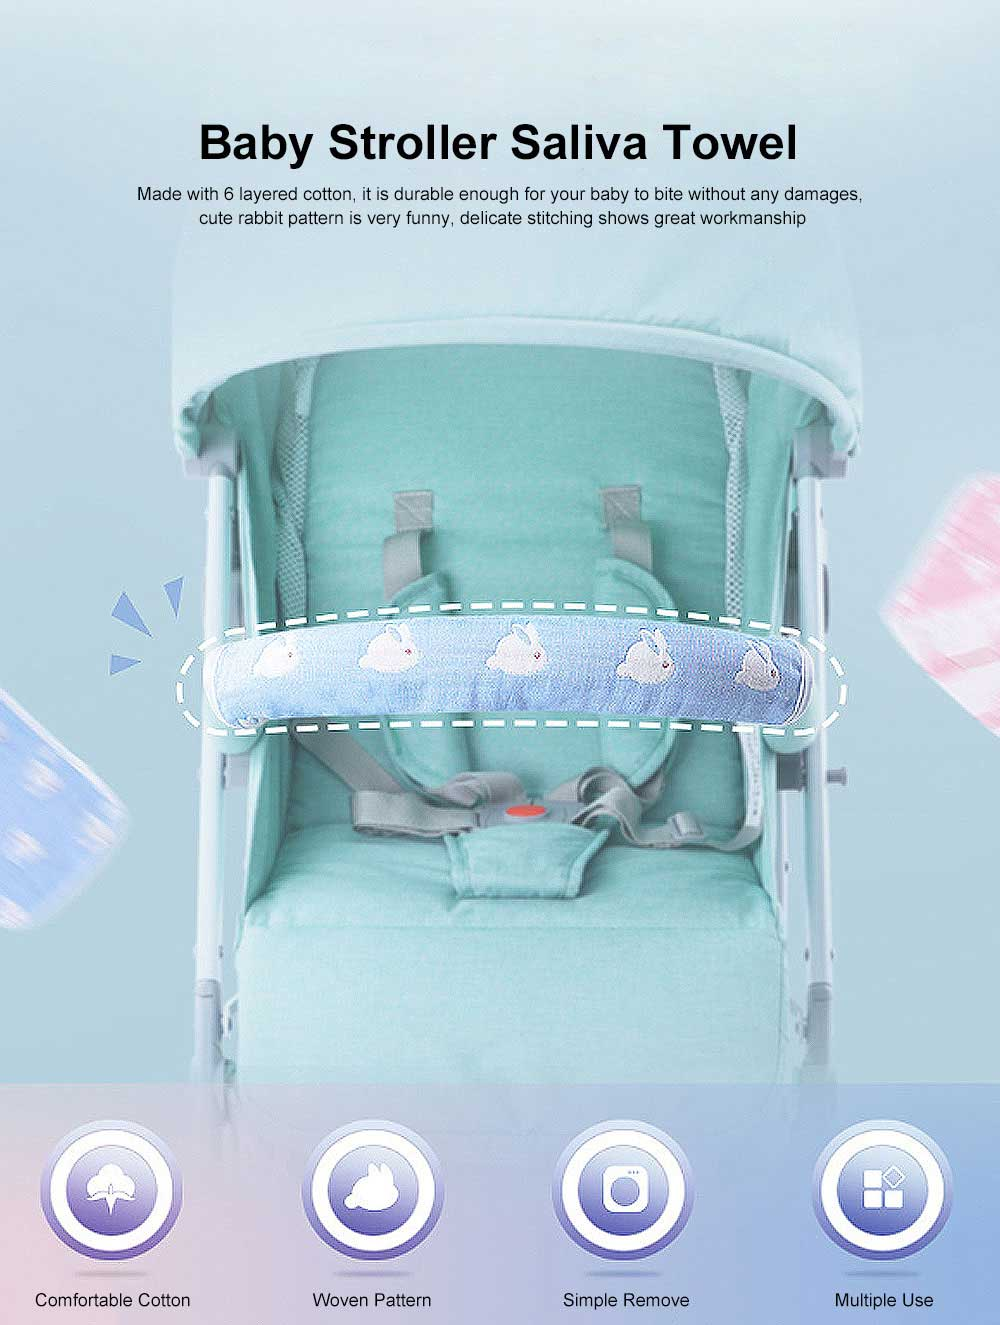 Baby Stroller Biting Saliva Towel with Cute Rabbit Design, Great Woven Baby Towel Baby Stroller Armrest Set Protective Cover Cotton Detachable 0